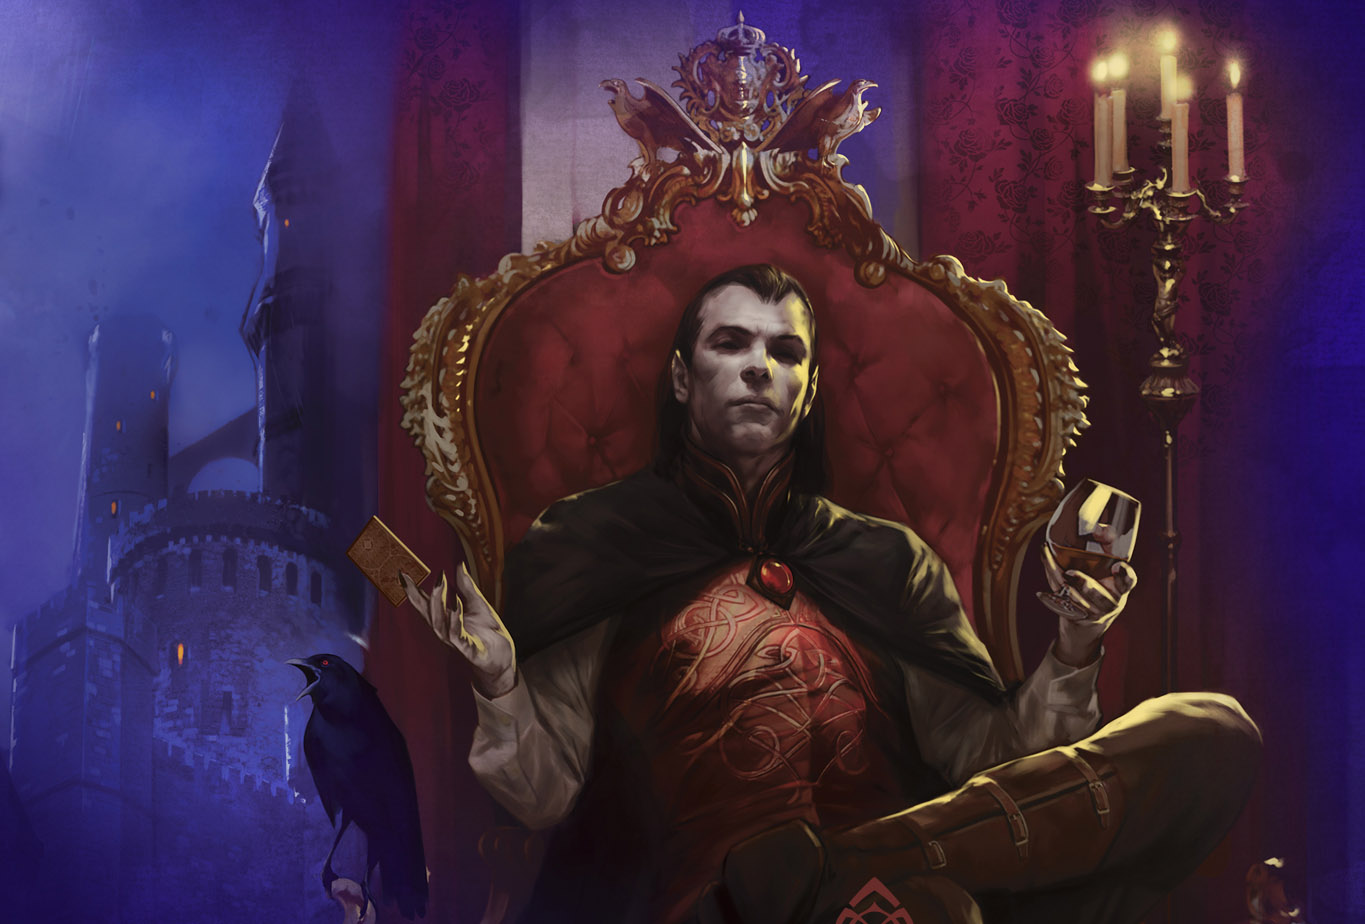 Strahd sits on a throne. He holds wine in one hand and a tarokka card in the other.